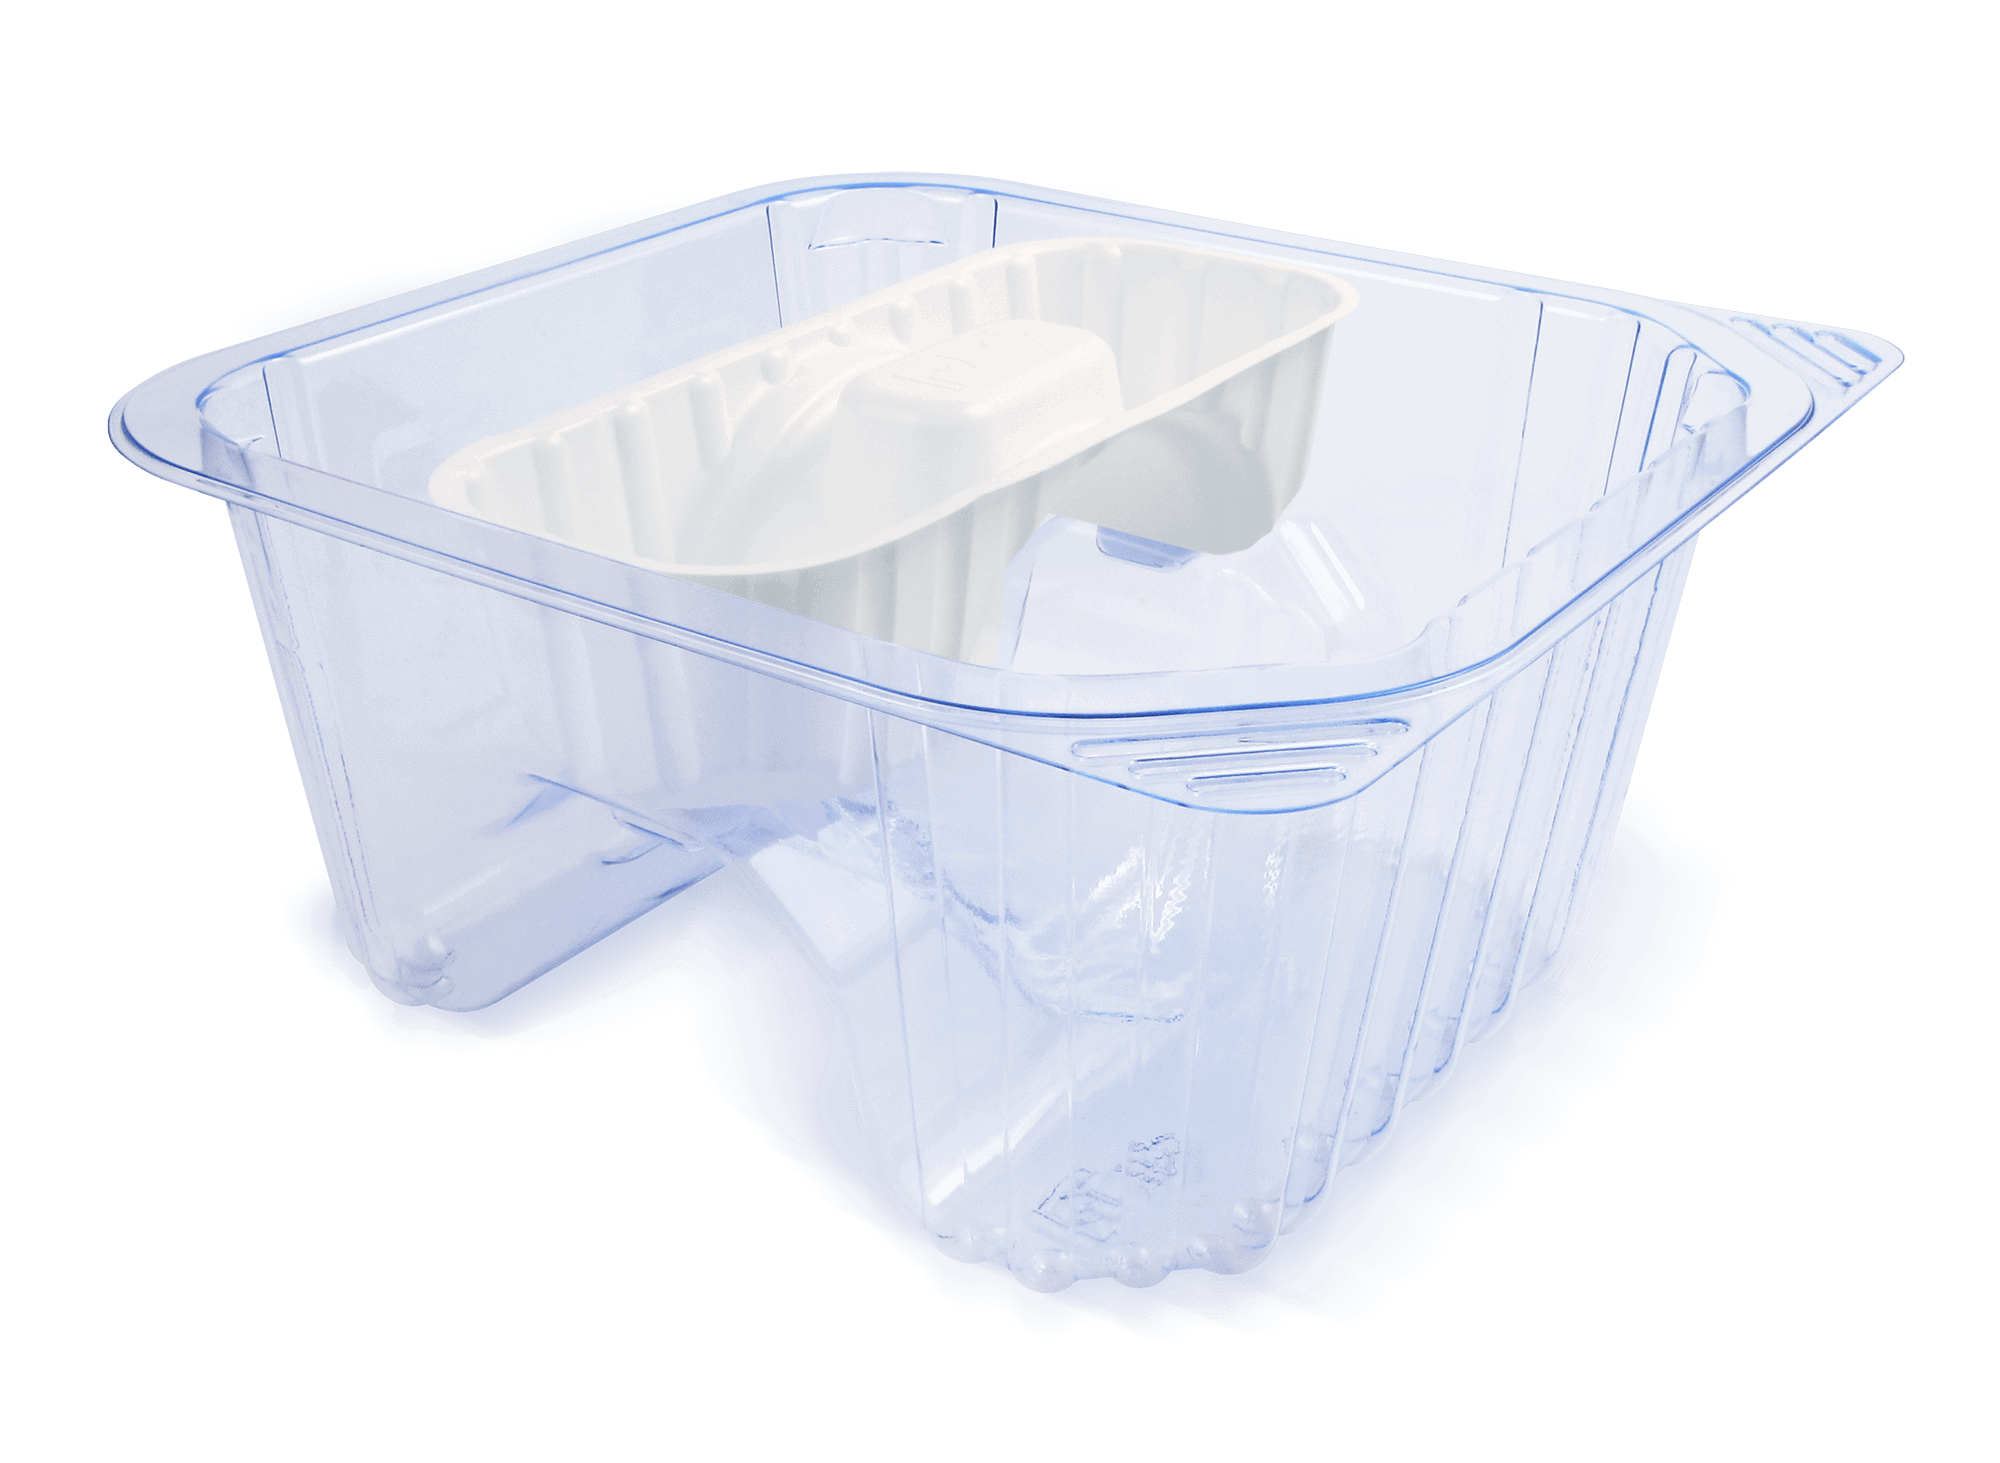 Medical Device Deep Tub Packaging Image